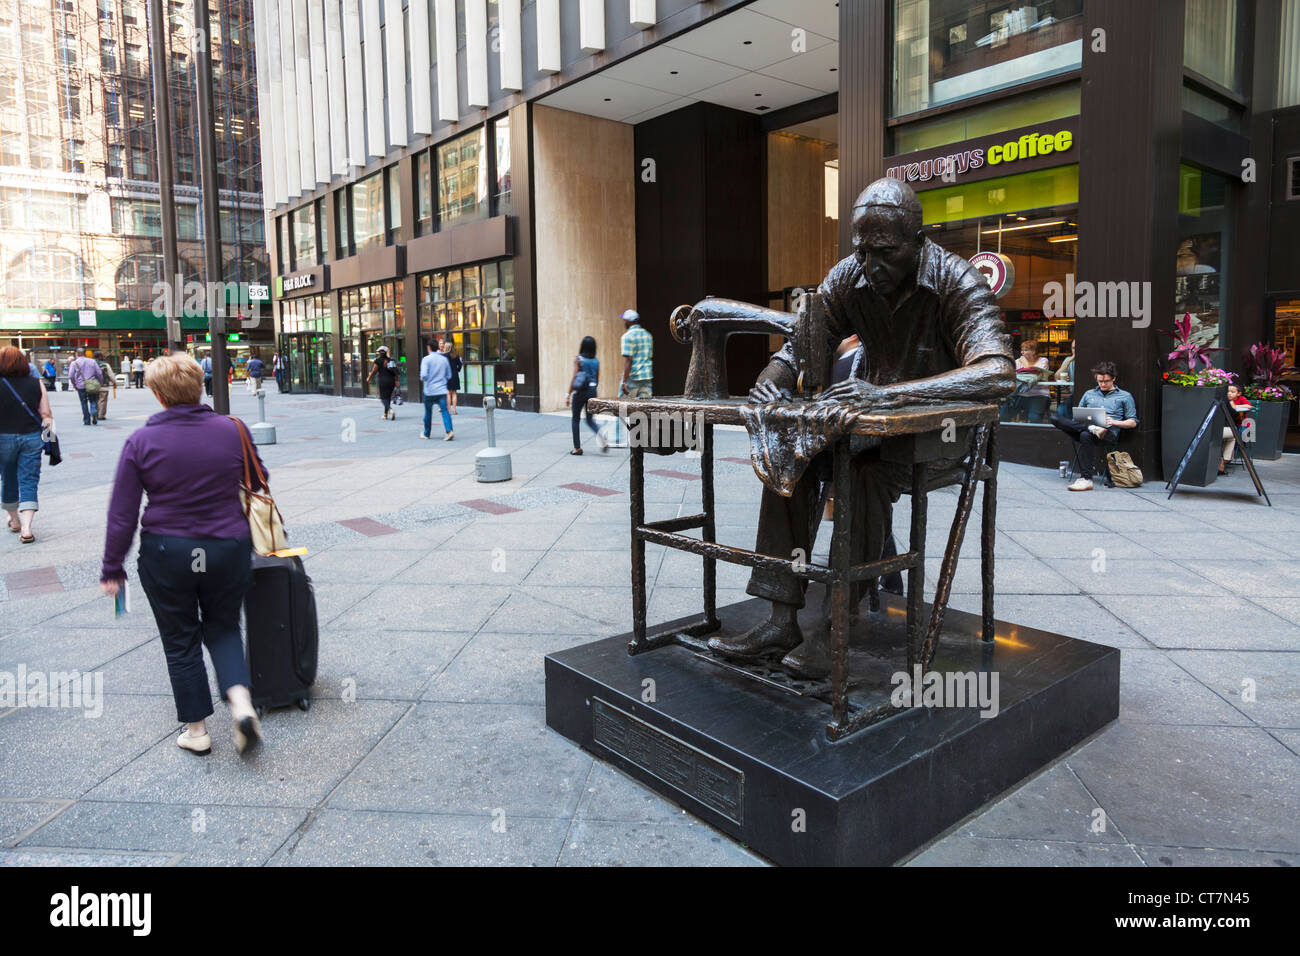 Manhattan New York City Garment District with huge statue of man stitching garments on treadle sewing machine - Stock Image